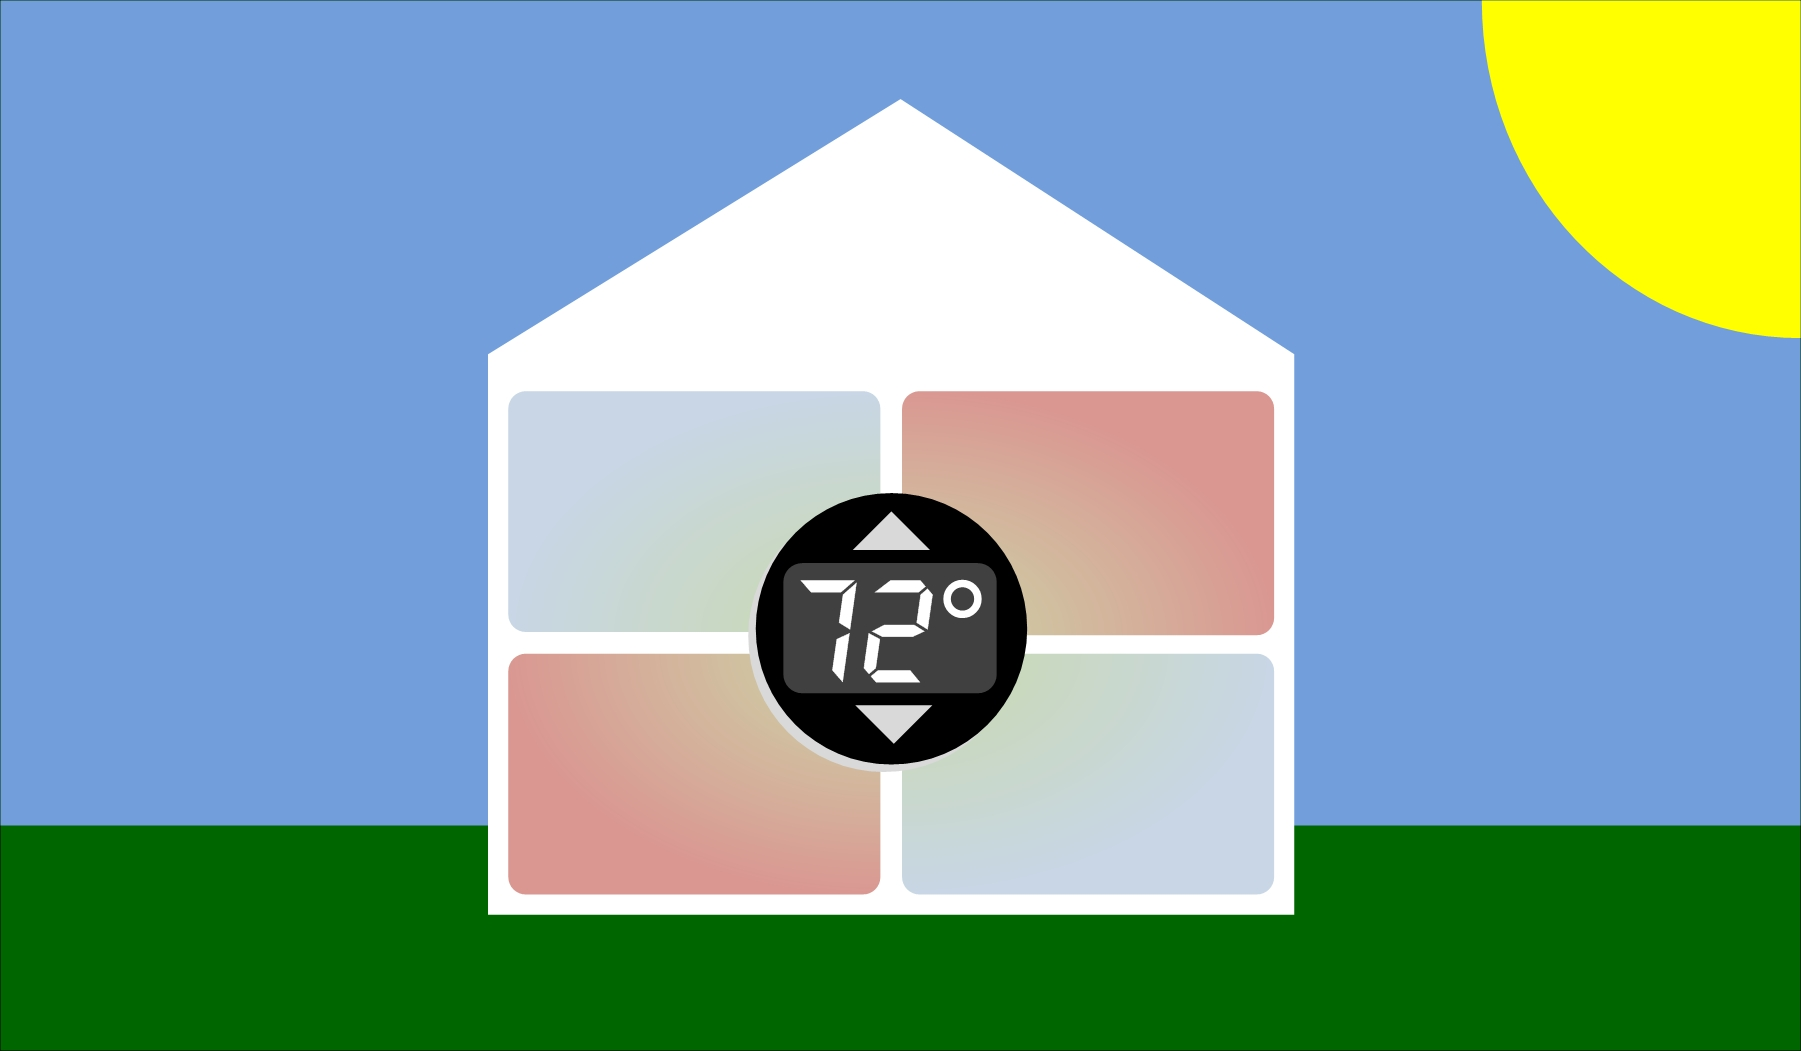 With only one thermostat, some areas of the house can get hot especially during the summer